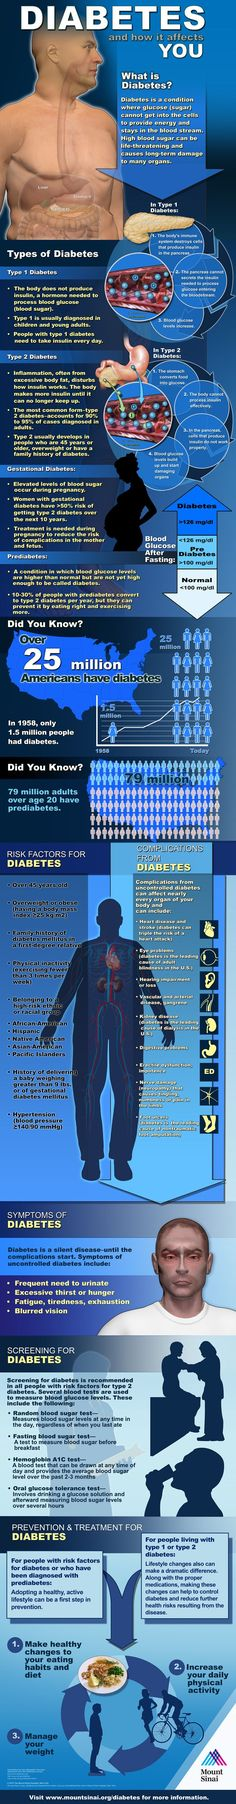 Type 2 Diabetes Infographic Health: What is diabetes? How does it affect you? Information graphic.Health: What is diabetes? How does it affect you? Information graphic. Diabetes Facts, Diabetes Awareness, Type 1 Diabetes, Diabetes Statistics, Diabetes Care, Diabetes Medicine, Diabetes Diet, Health And Wellness, Health Tips